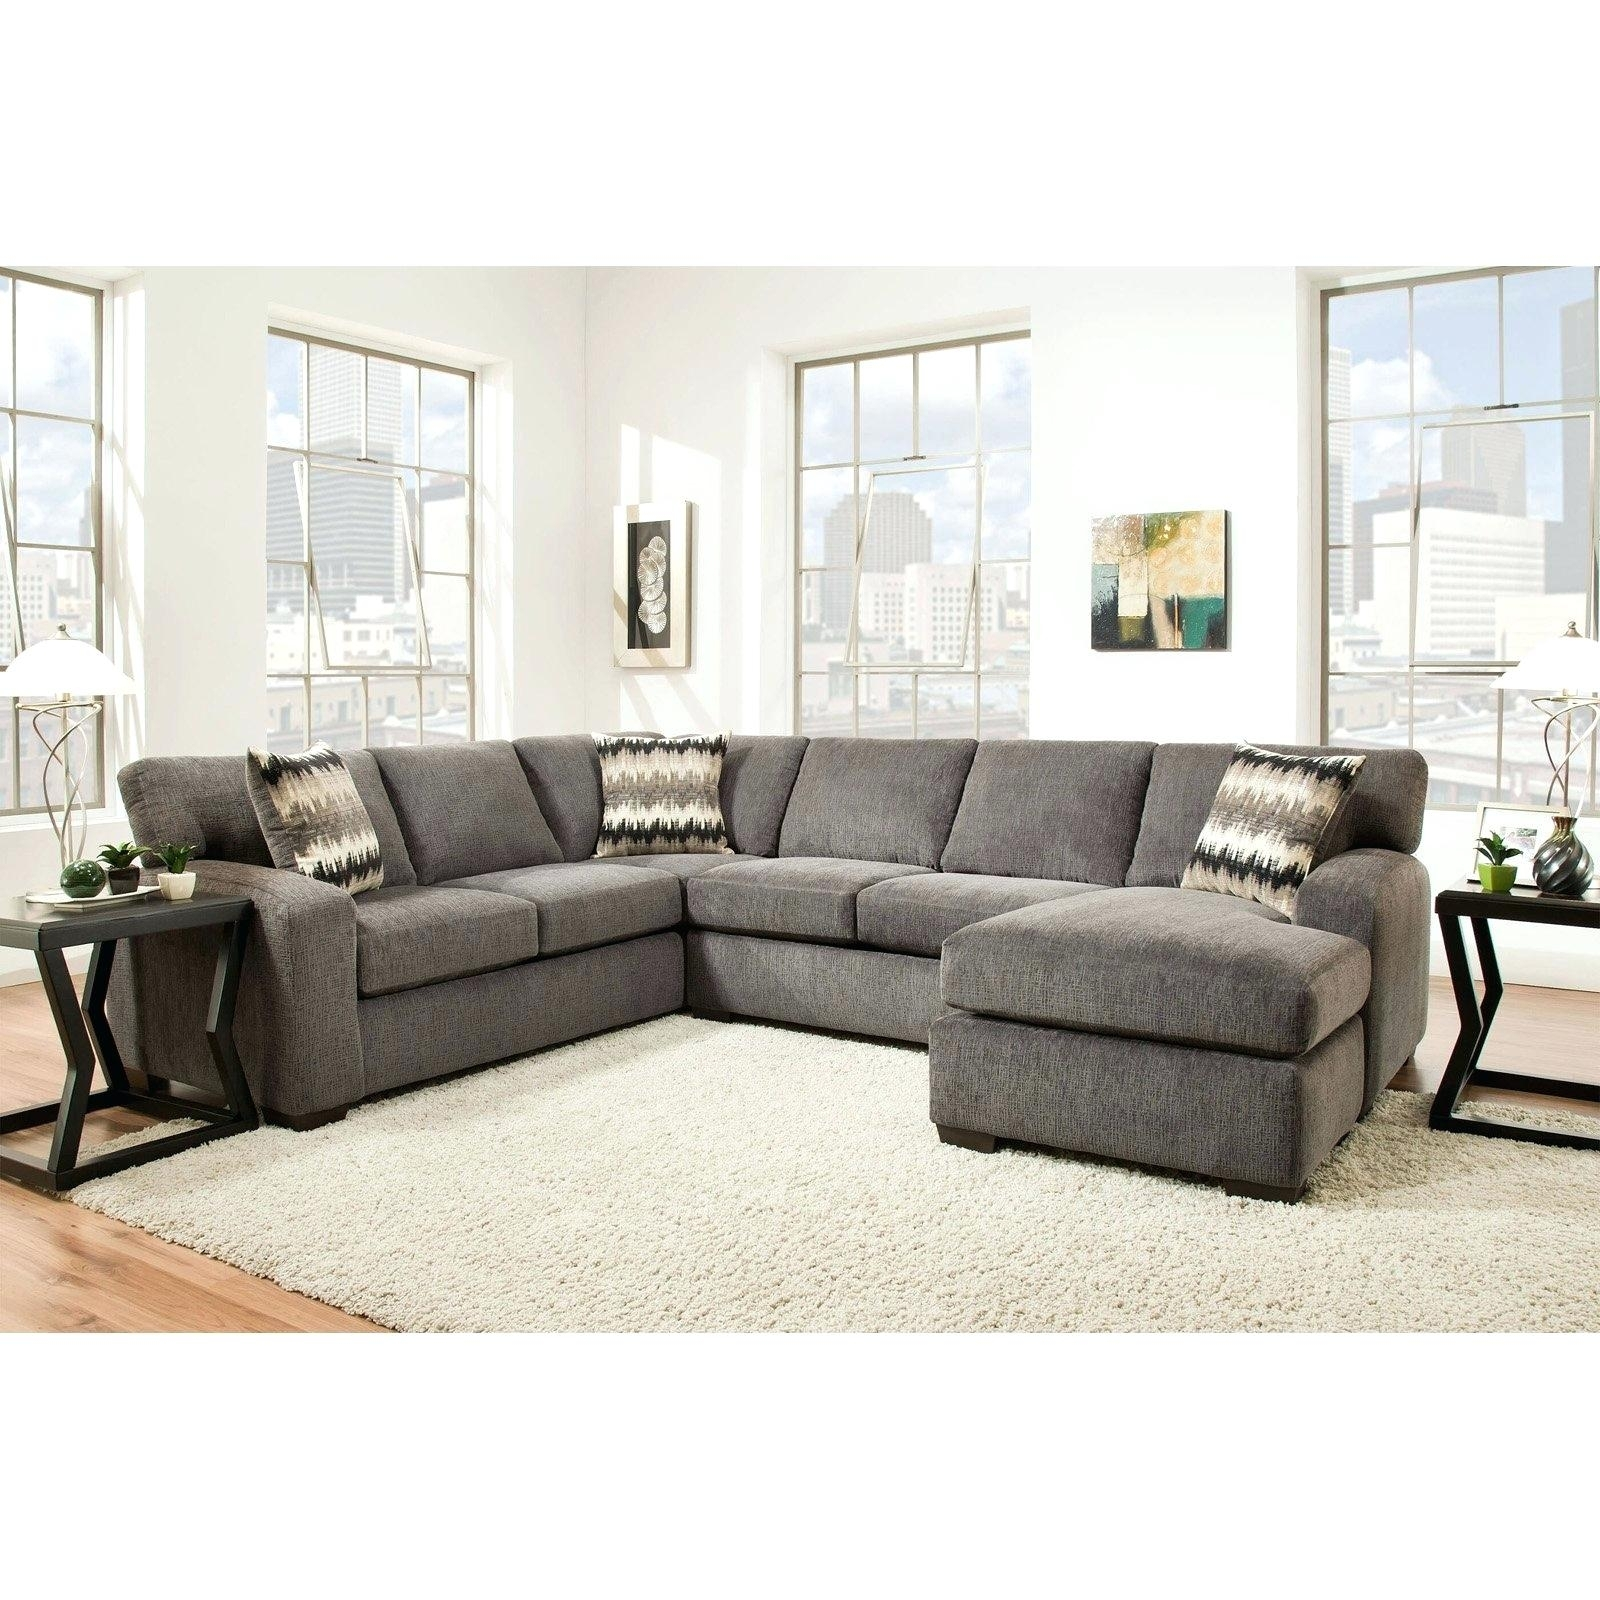 Inspirational Pictures Of Sectional Couches For Denali Light Grey 6 inside Denali Light Grey 6 Piece Reclining Sectionals With 2 Power Headrests